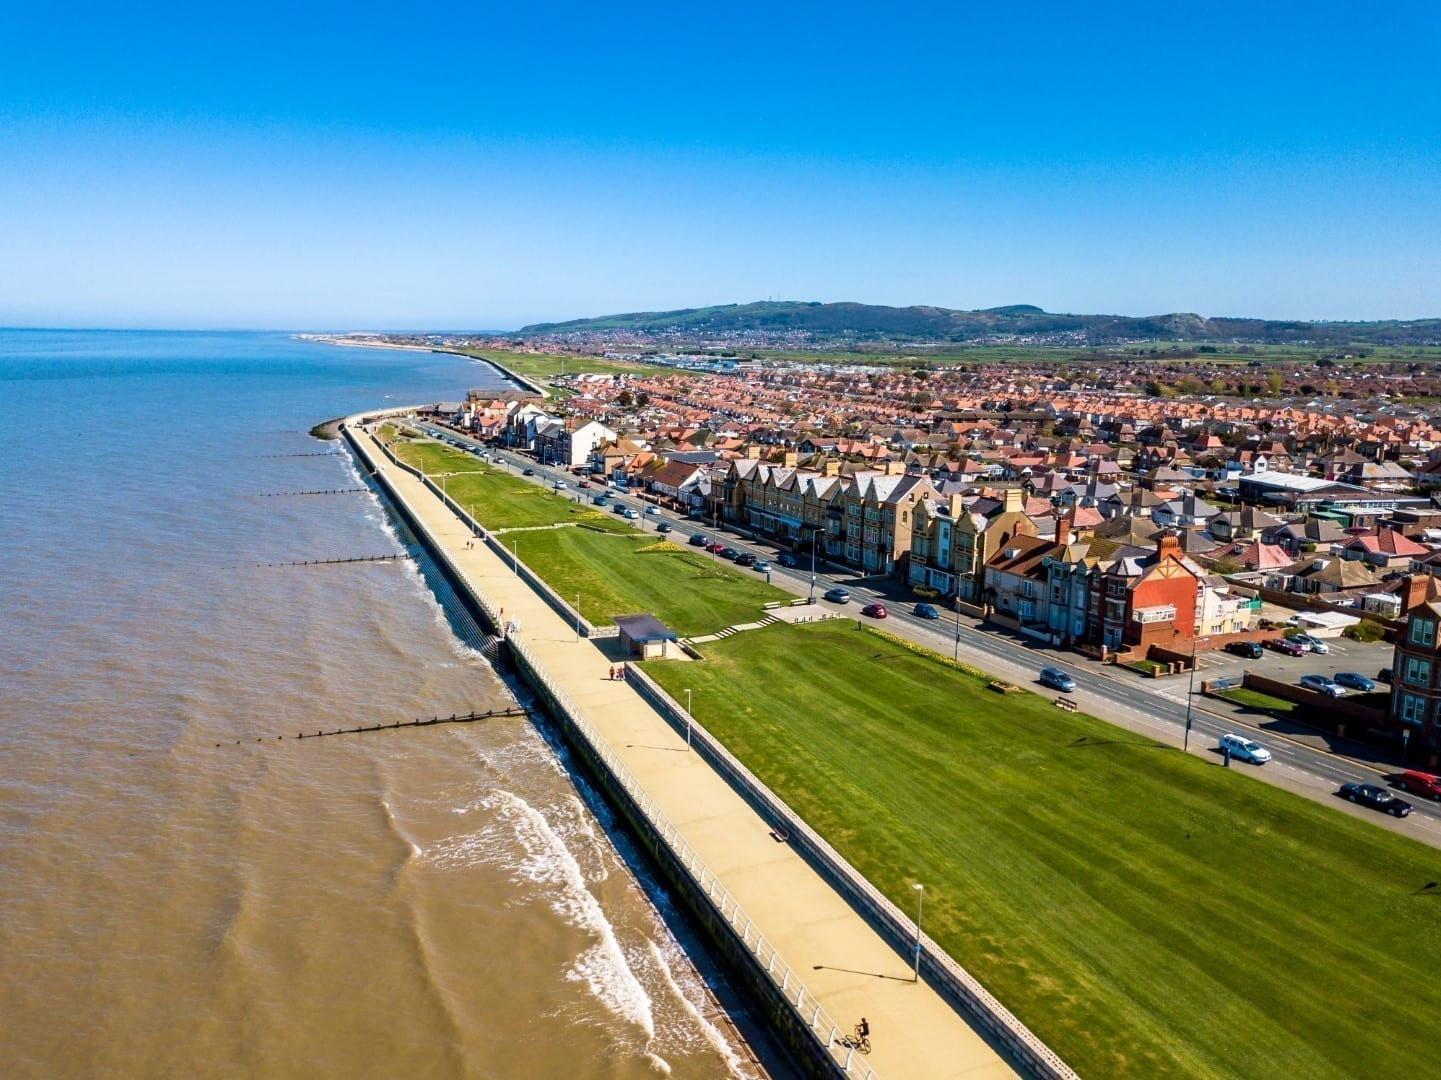 Aerial view of the Rhyl Seafront, North East Wales